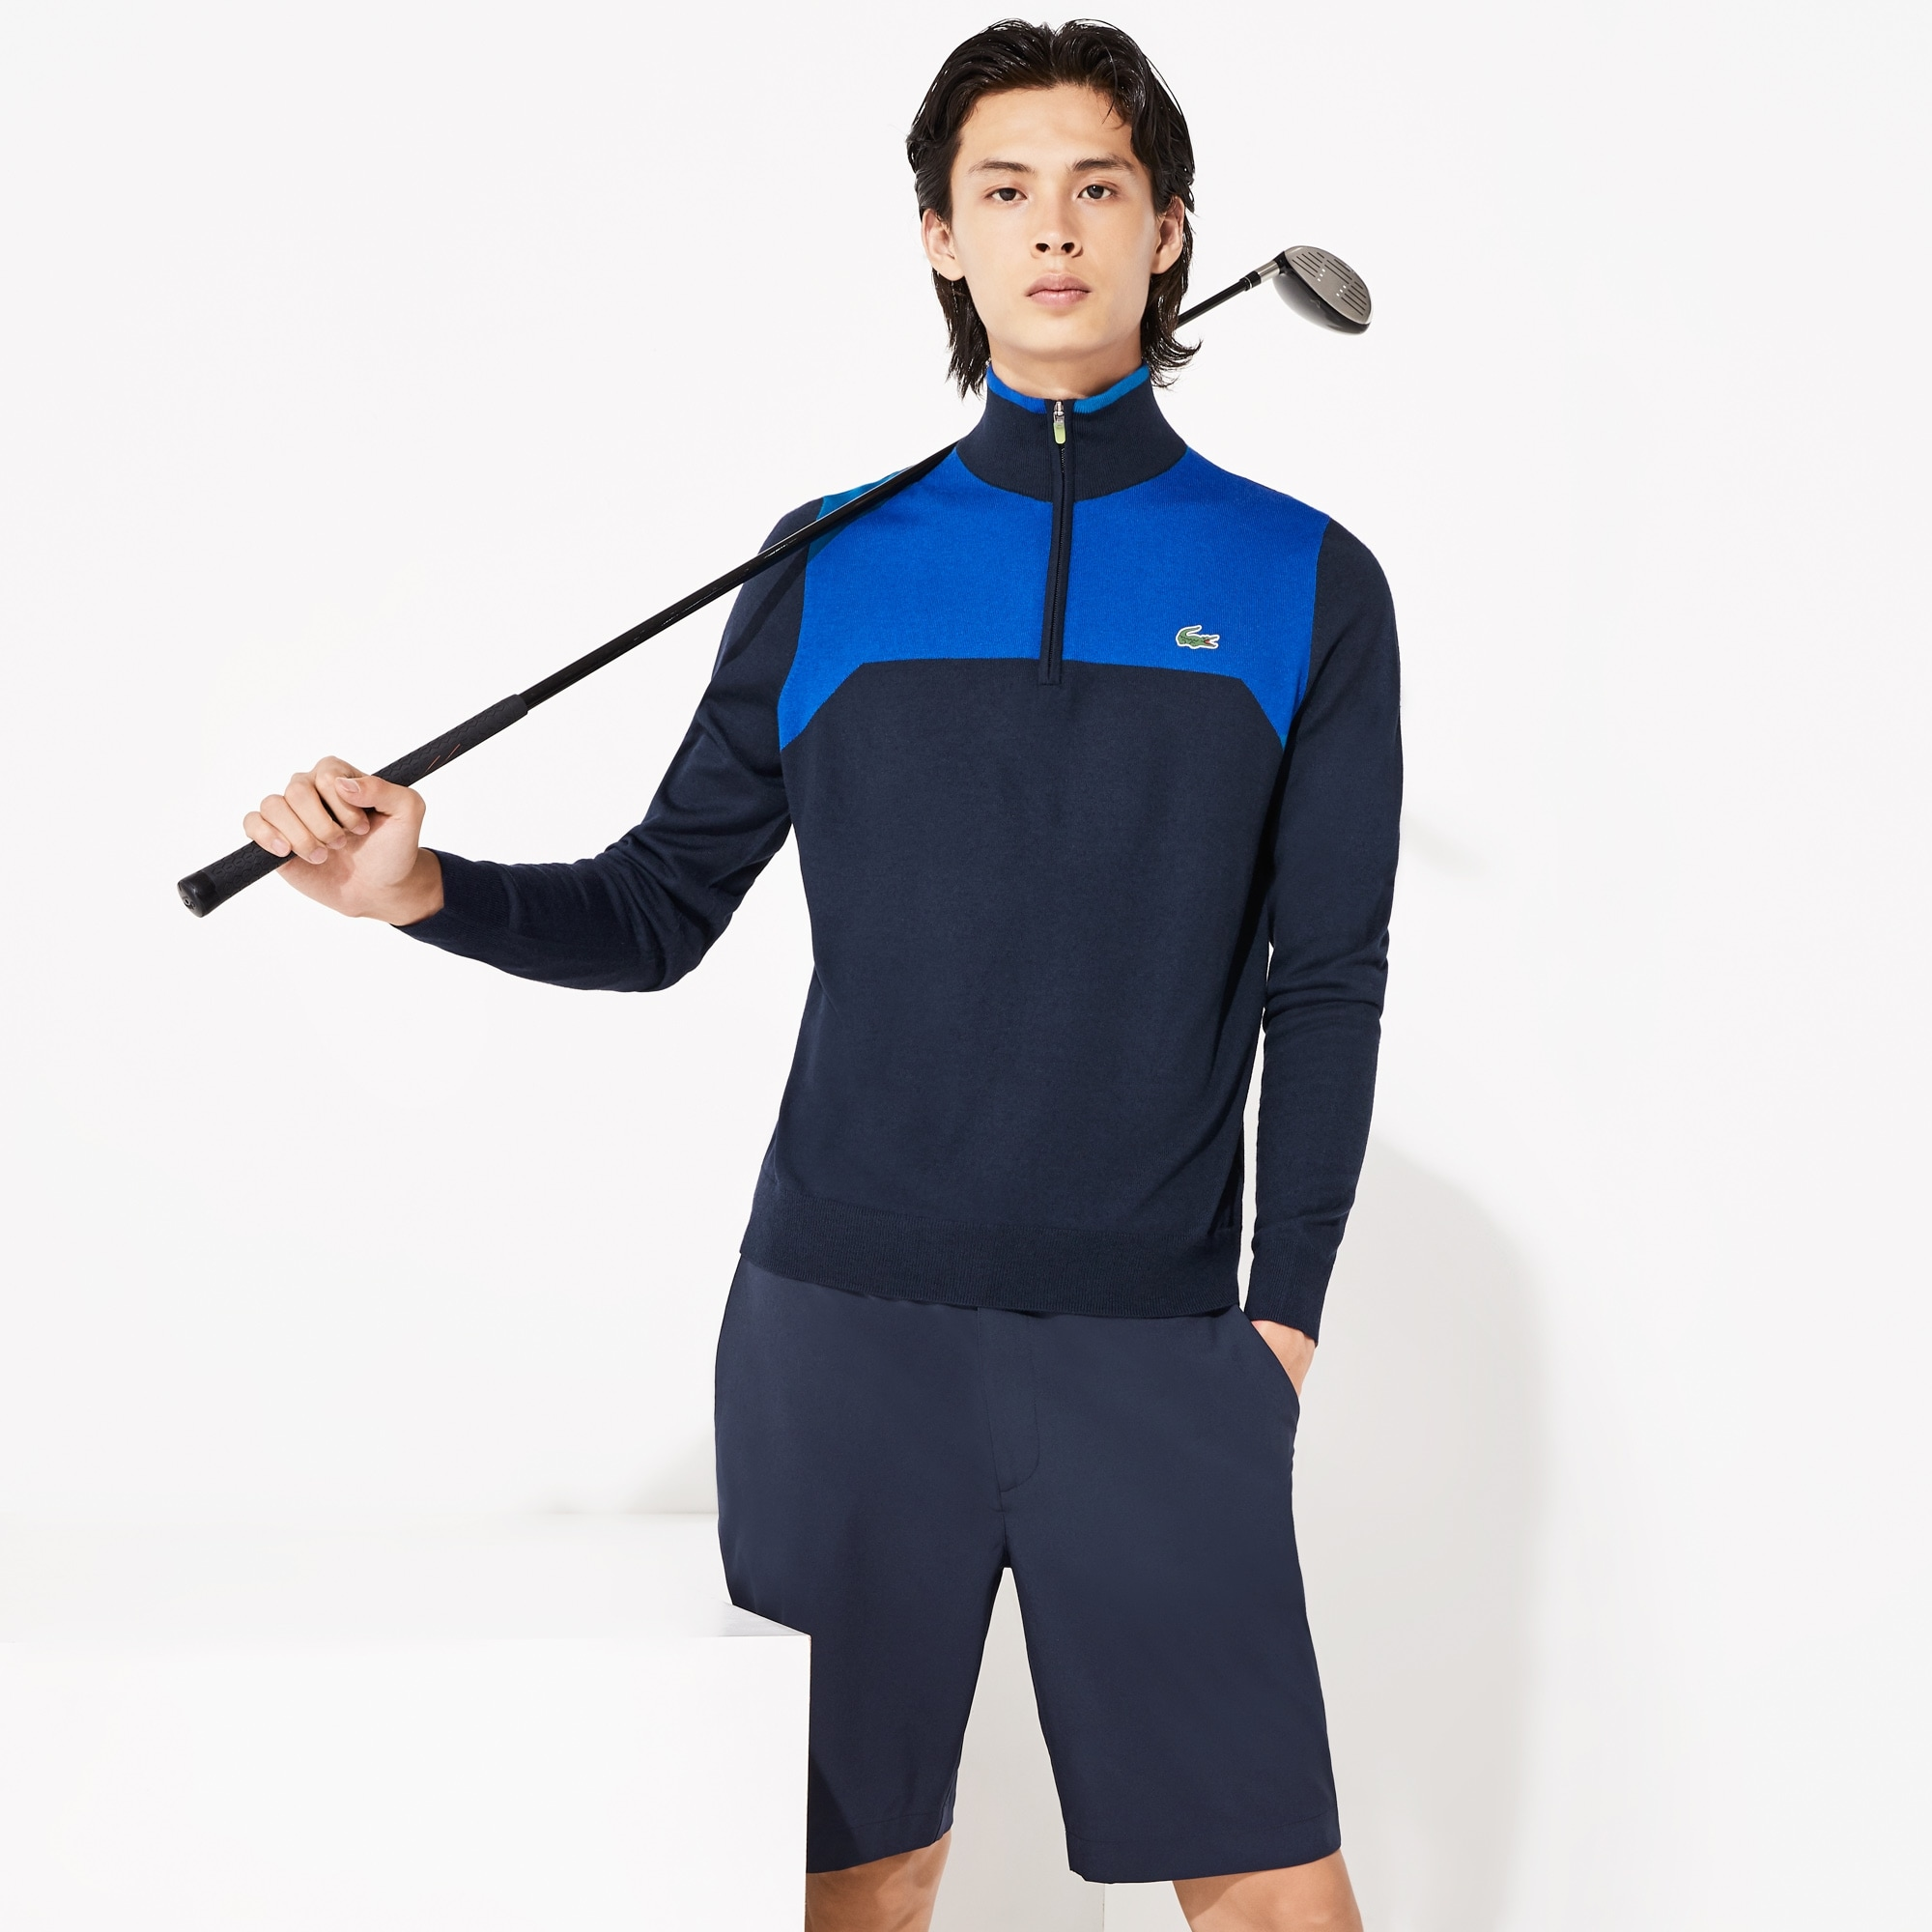 Men's Lacoste SPORT Zip Stand-Up Neck Technical Wool Golf Sweater